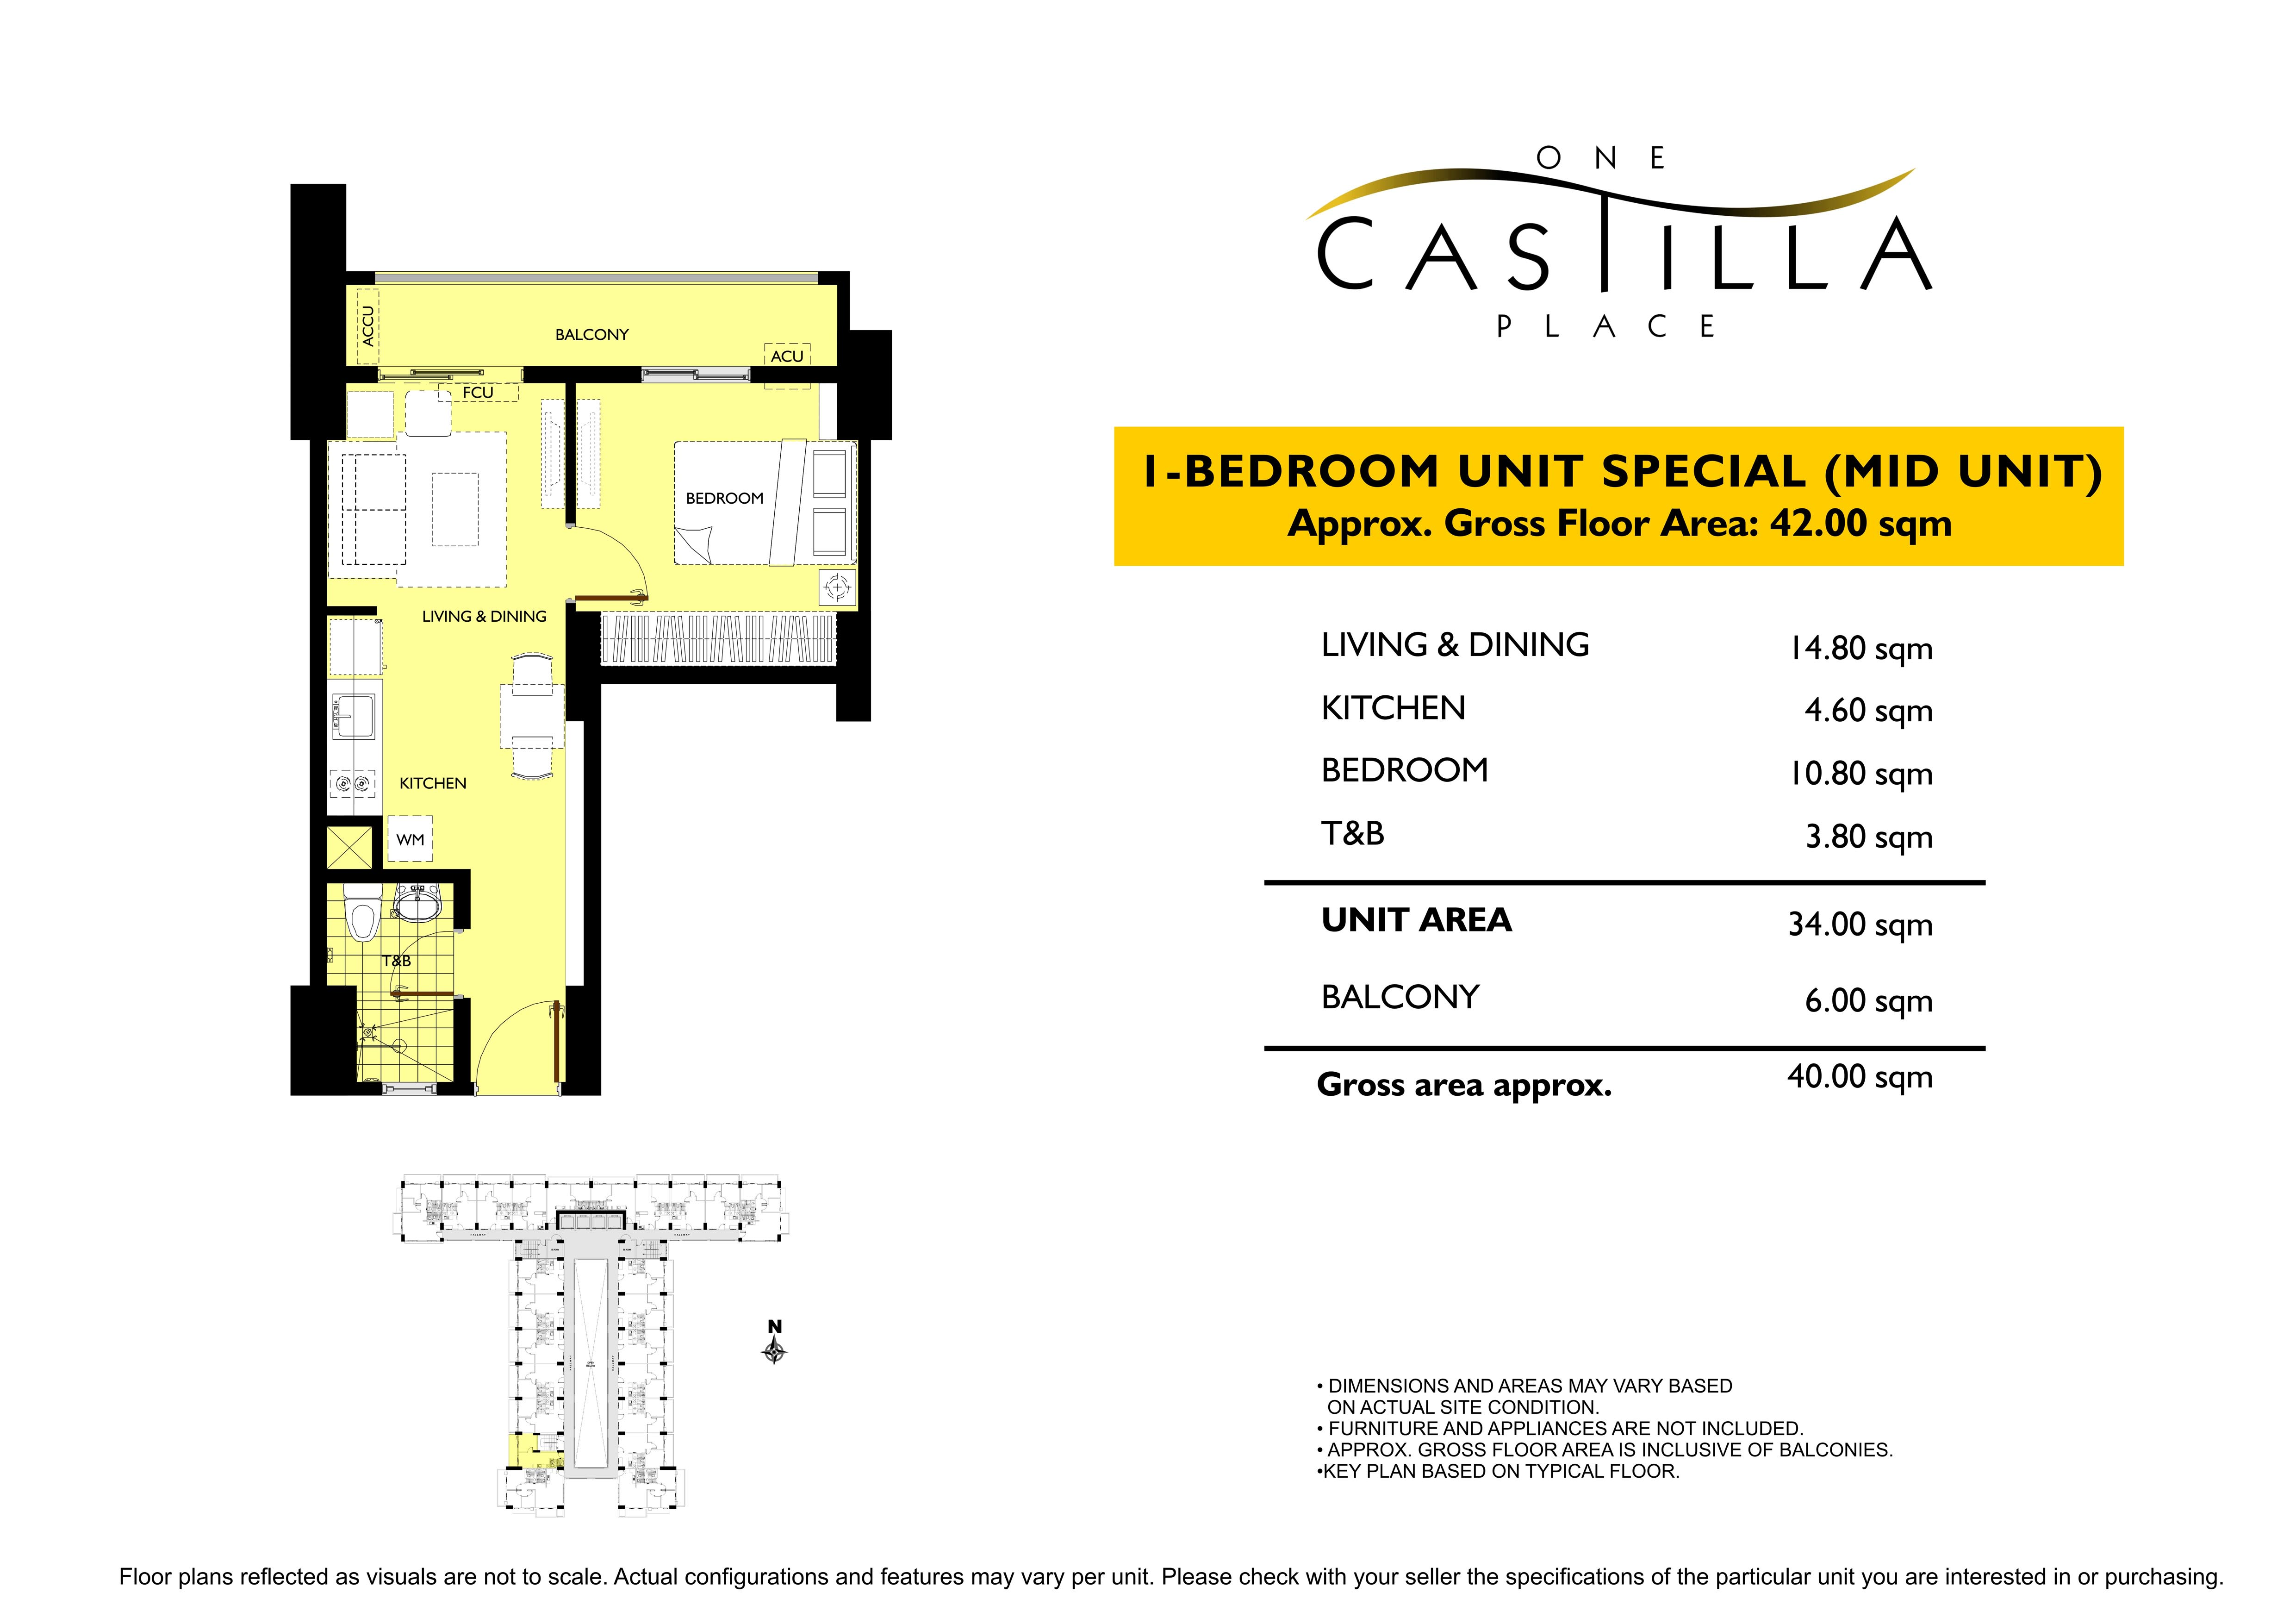 one-castilla-place-1br-special-mid-unit-42 sqm